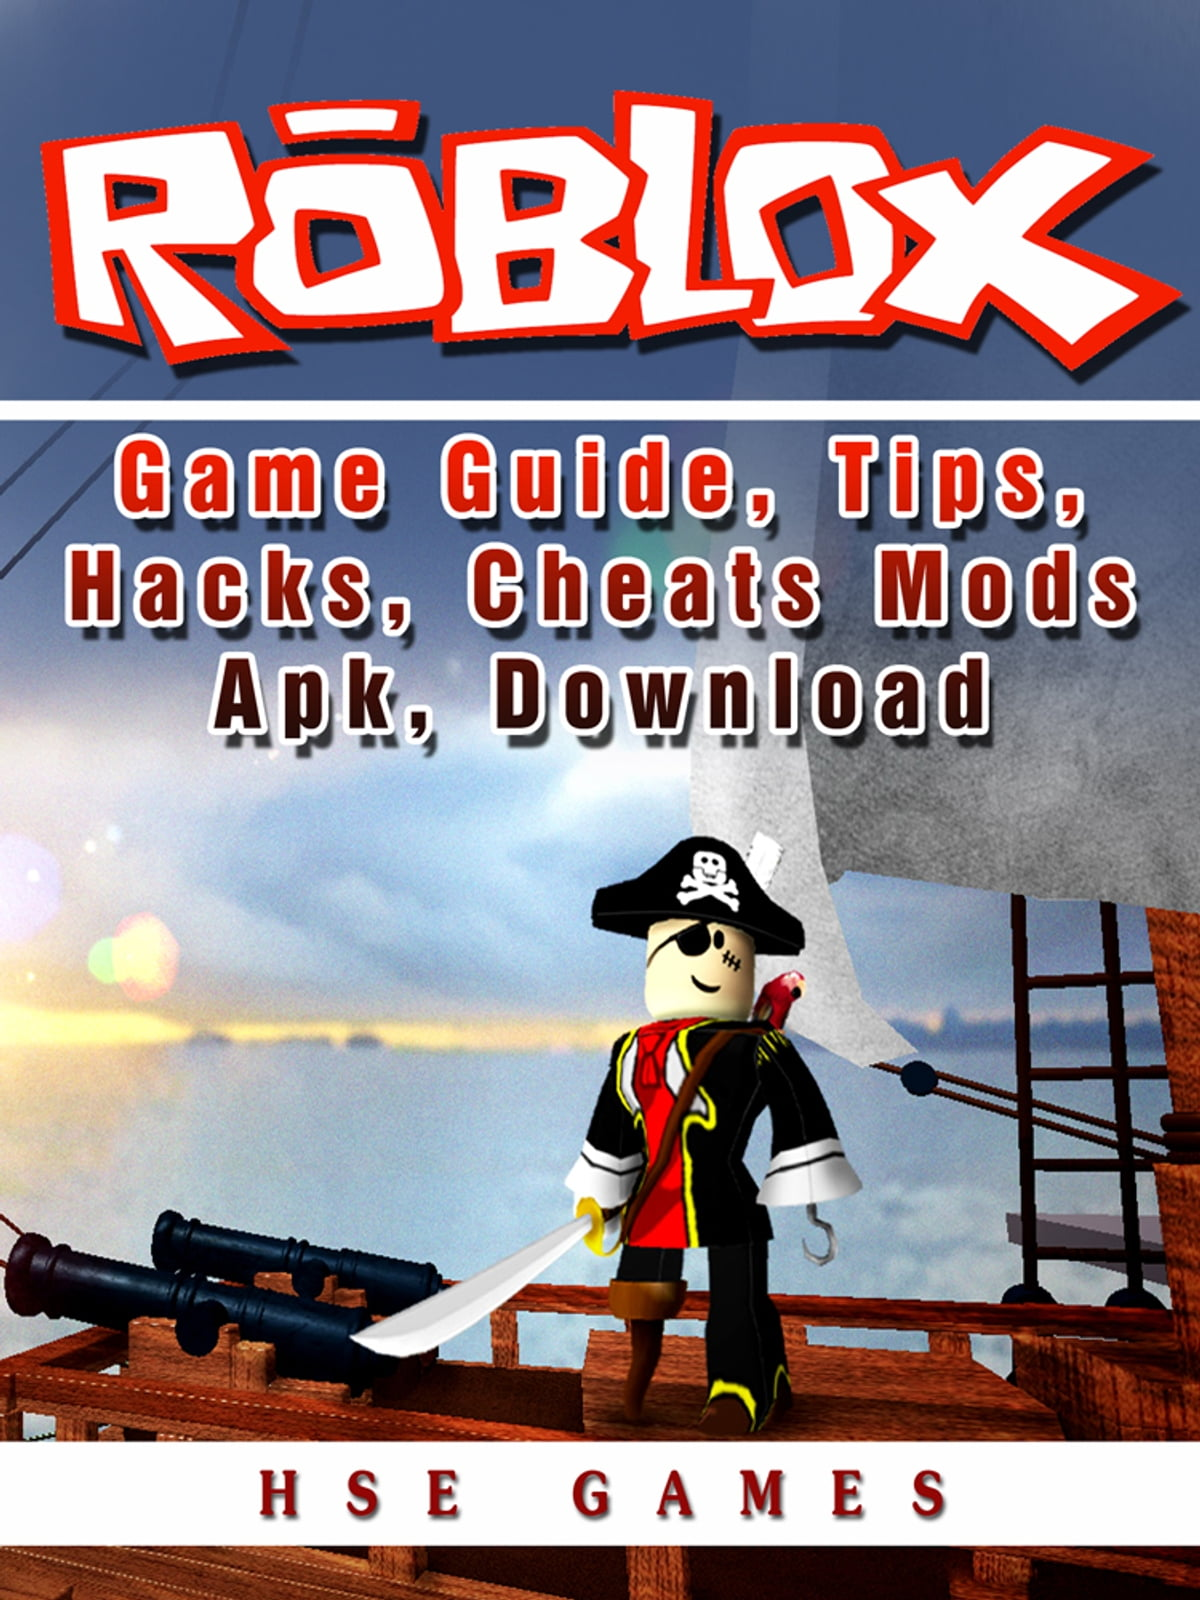 Roblox Game Guide Tips Hacks Cheats Mods Apk Download Ebook